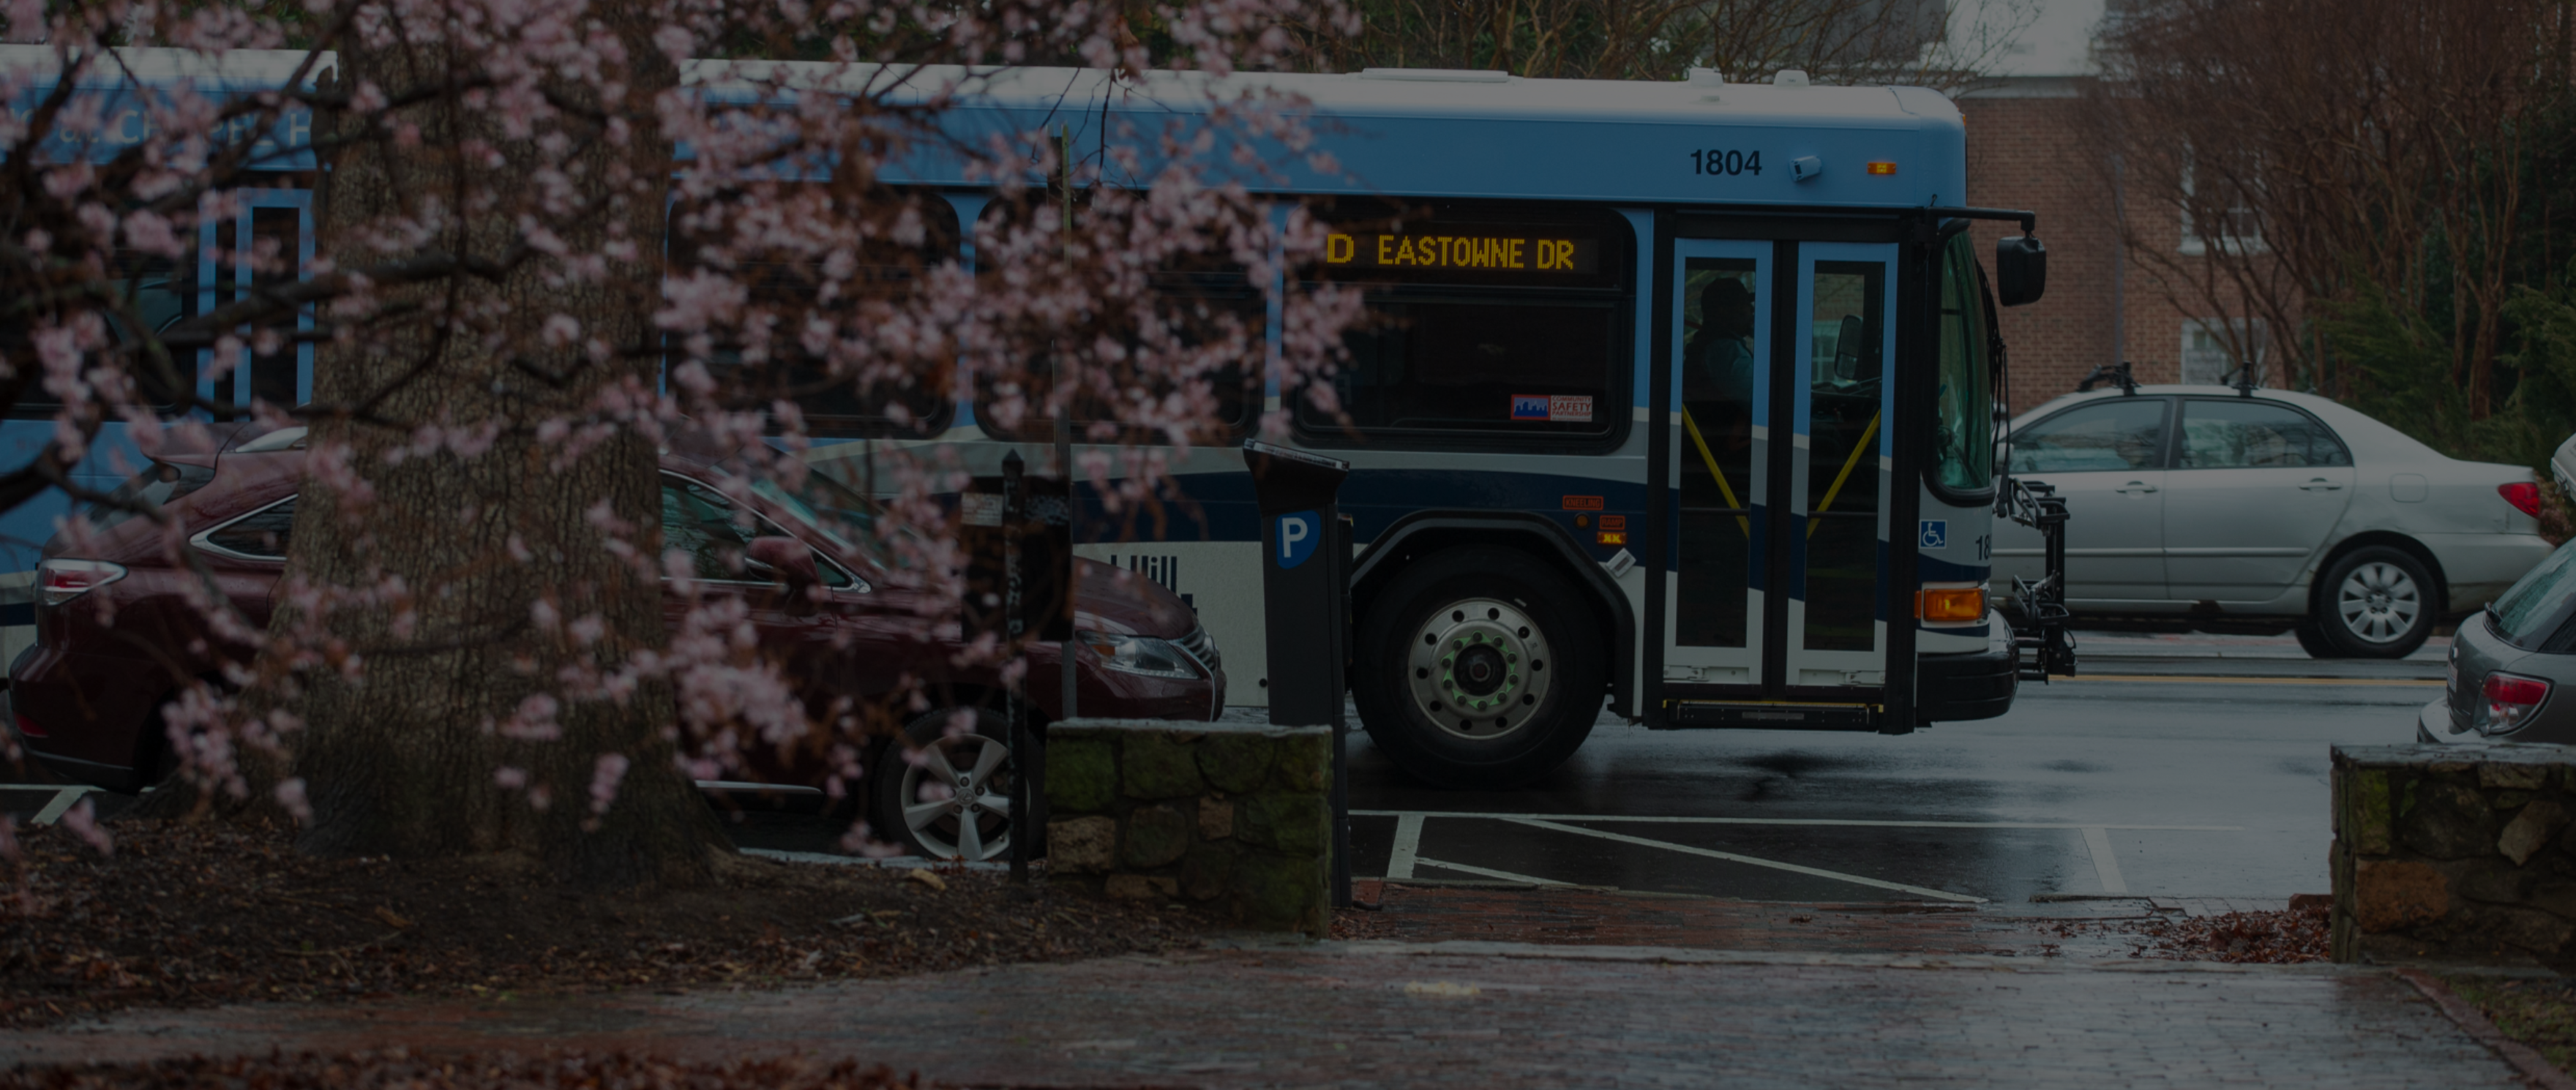 Eastowne Drive Bus Intersection